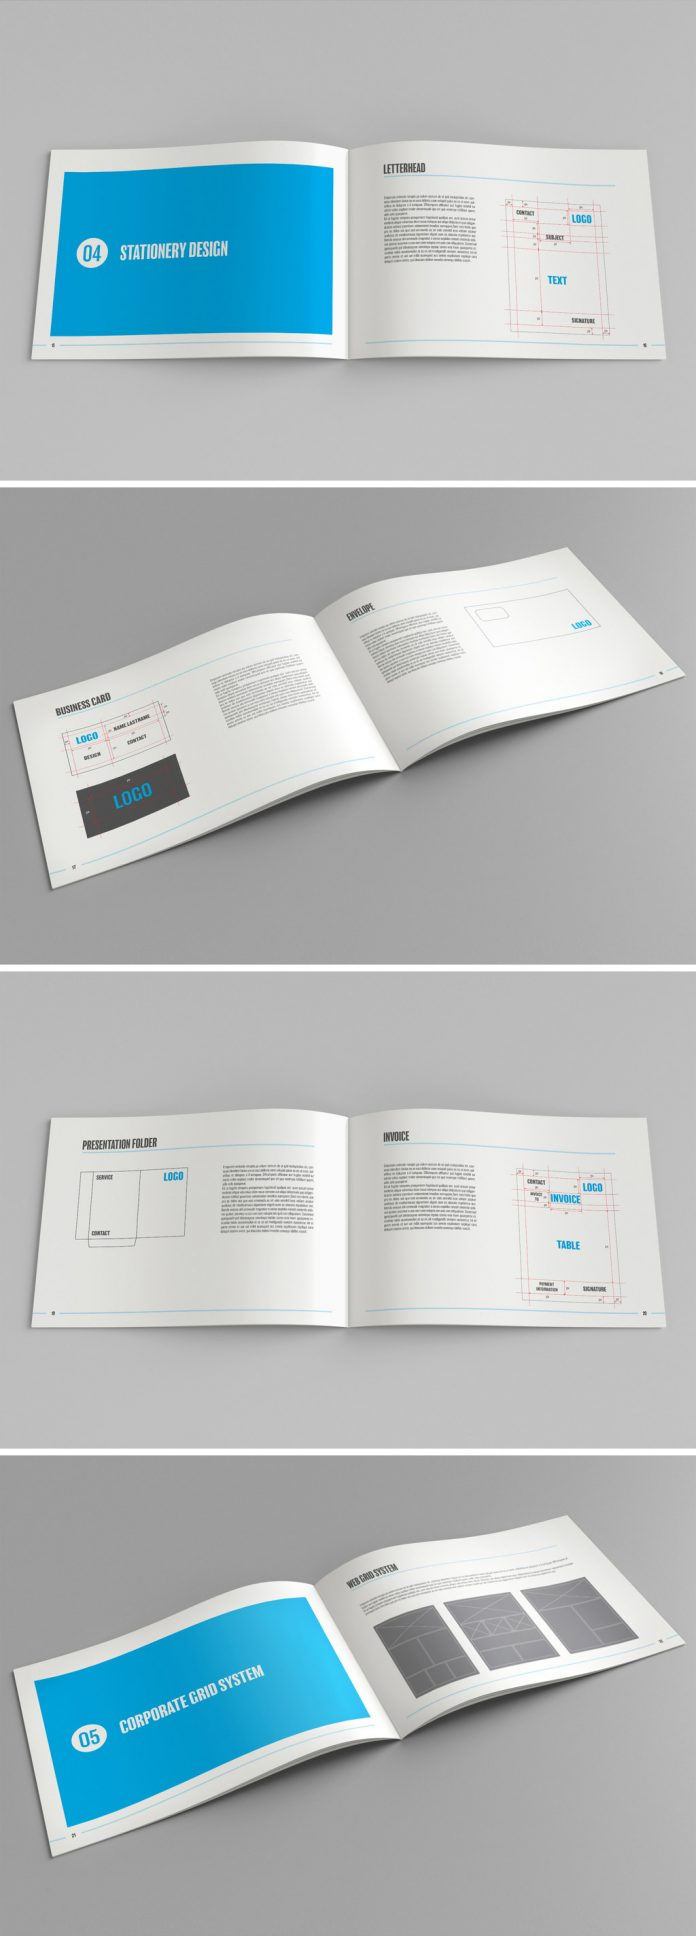 A brand manual and style guide template for Adobe InDesign.